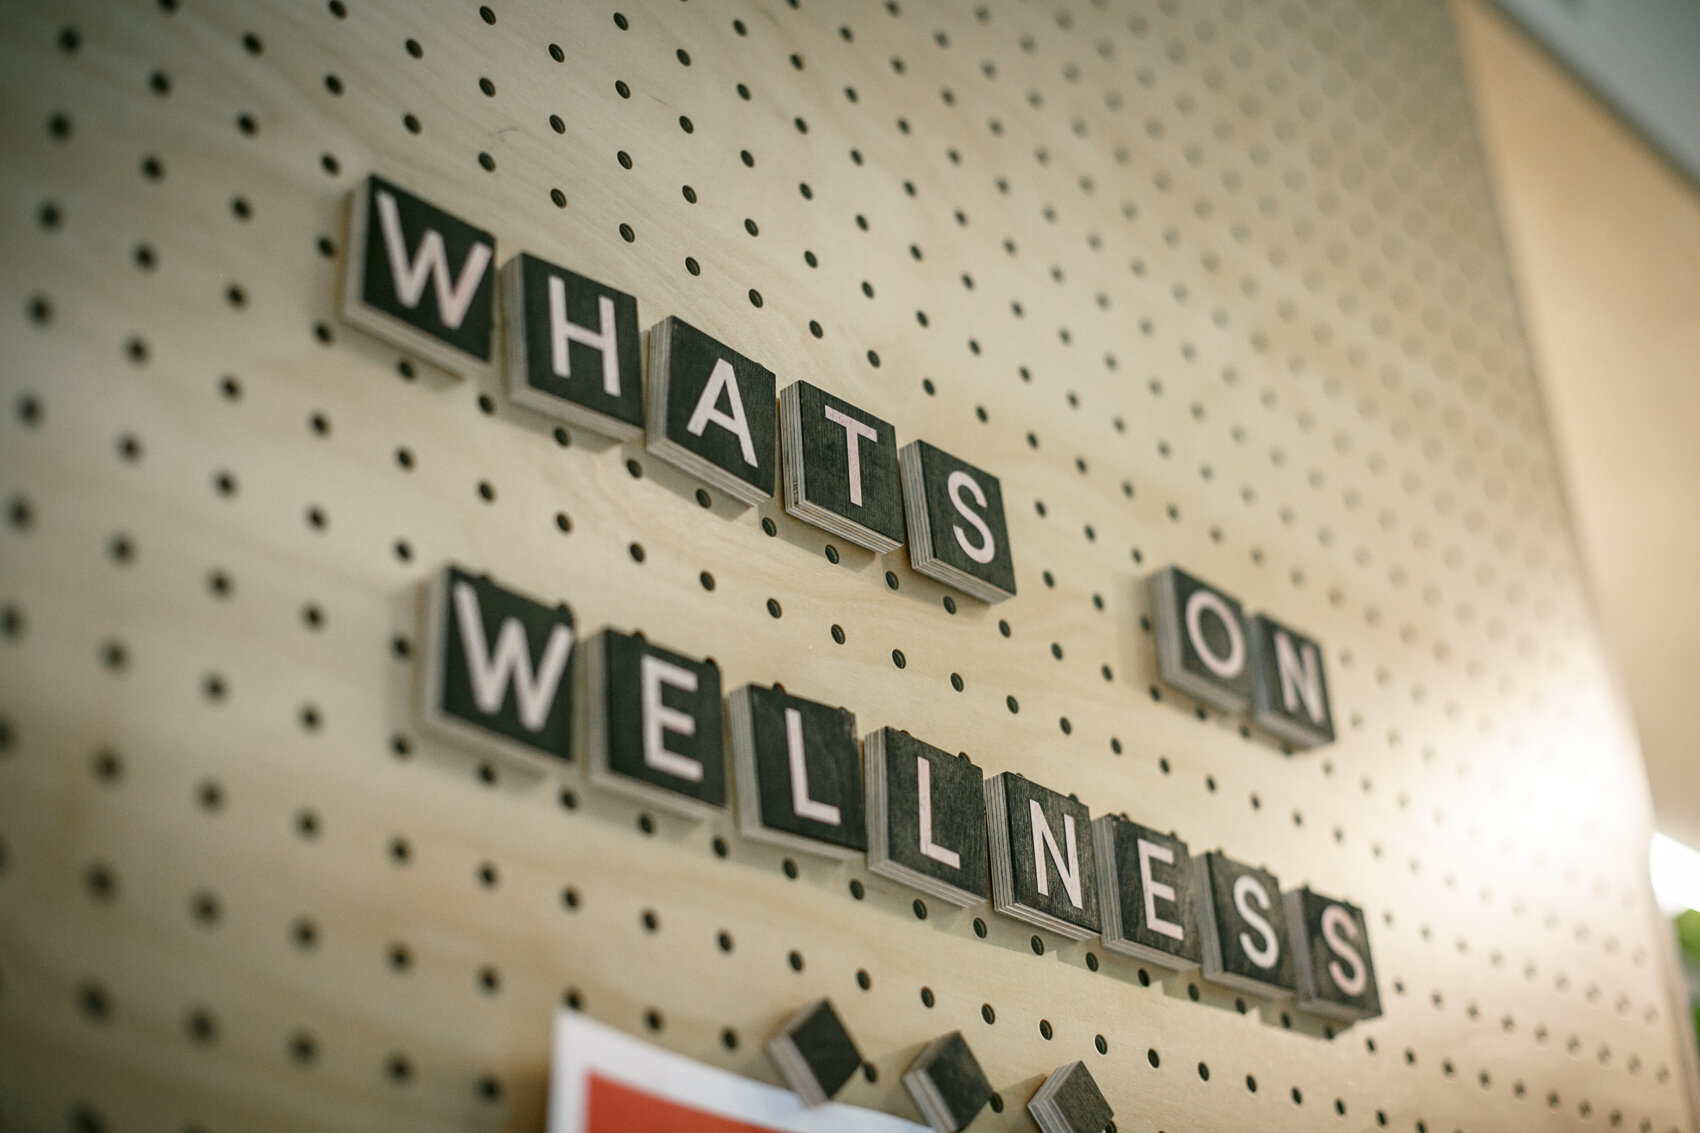 Whats on Wellness